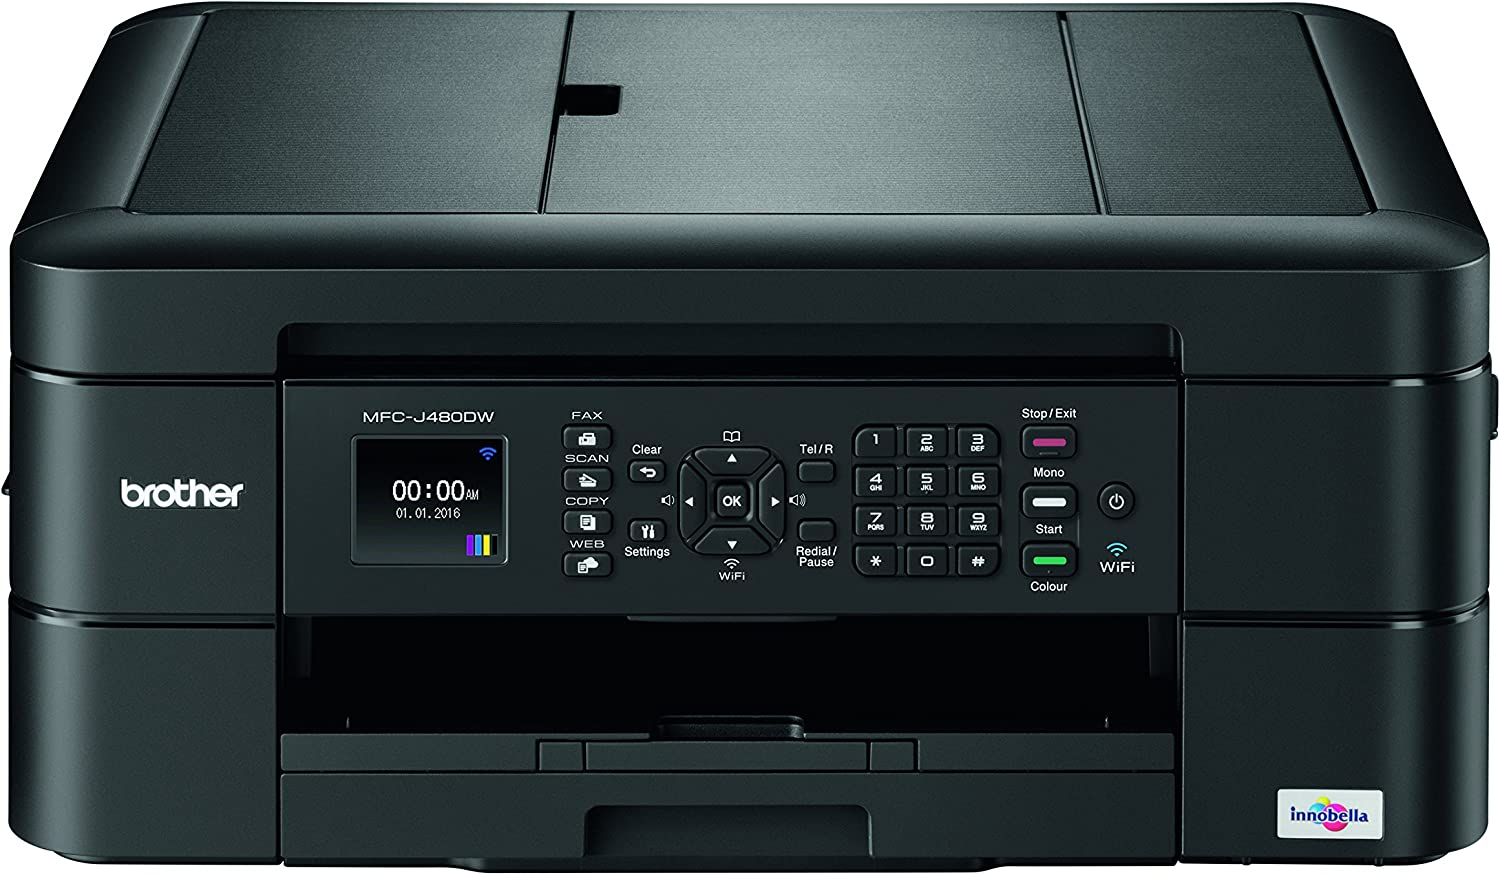 Brother MFC-J480dw Wireless Inkjet Color All-in-One Printer with Auto Document Feeder Dash Replenishment Enabled 1.8""